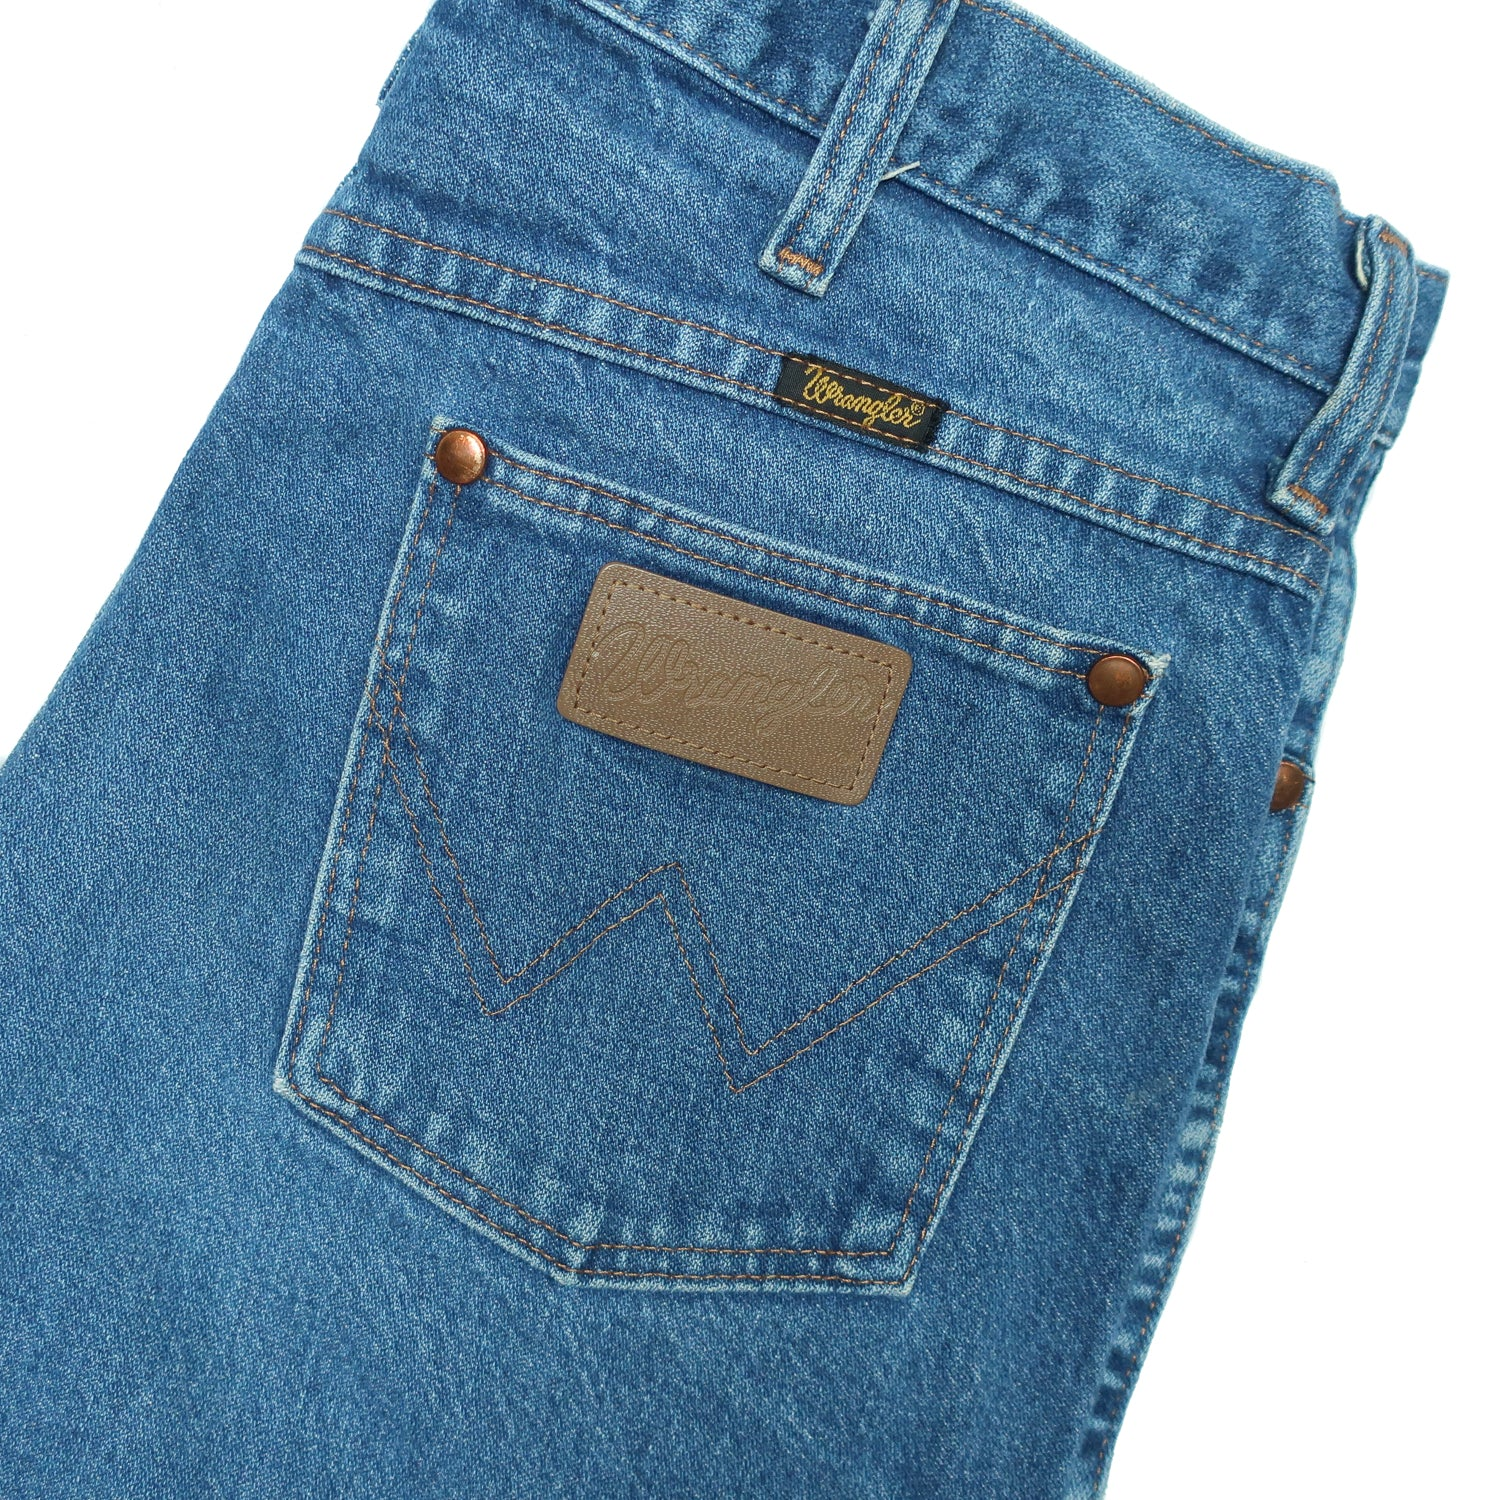 "Second Room Vintage Clothing. Beautifully worn in medium blue wash, straight leg Wrangler jeans. Five pocket style with copper/brass hardware, zipper fly and button, 12"" rise and Wrangler patch on back pocket. Free North American shipping on all orders."